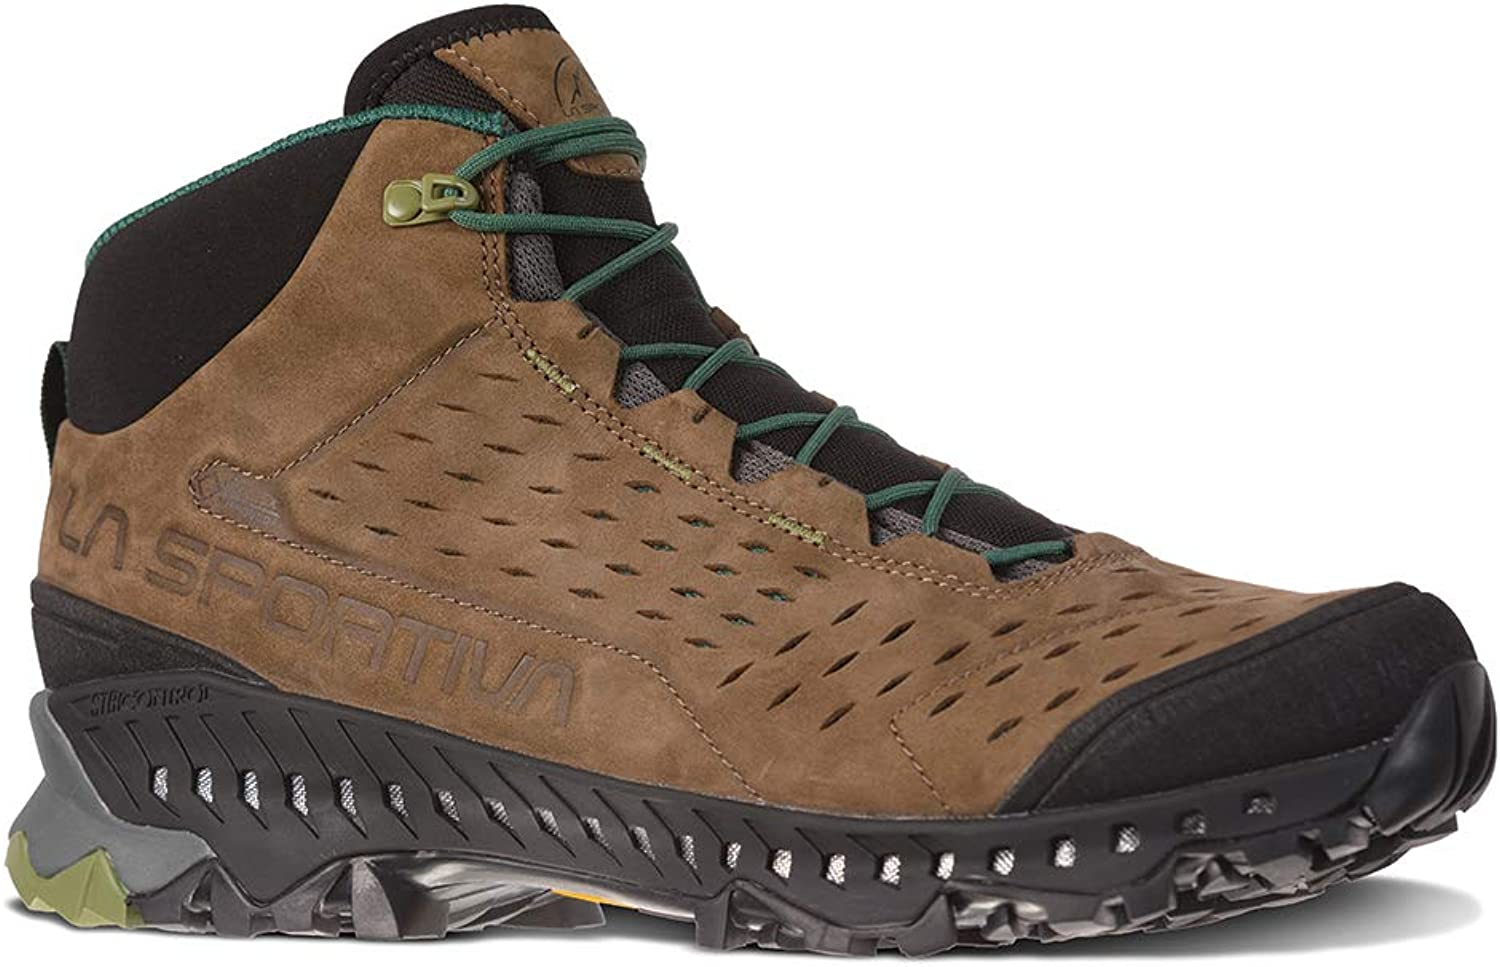 La Sportiva Pyramid GTX Hiking shoes